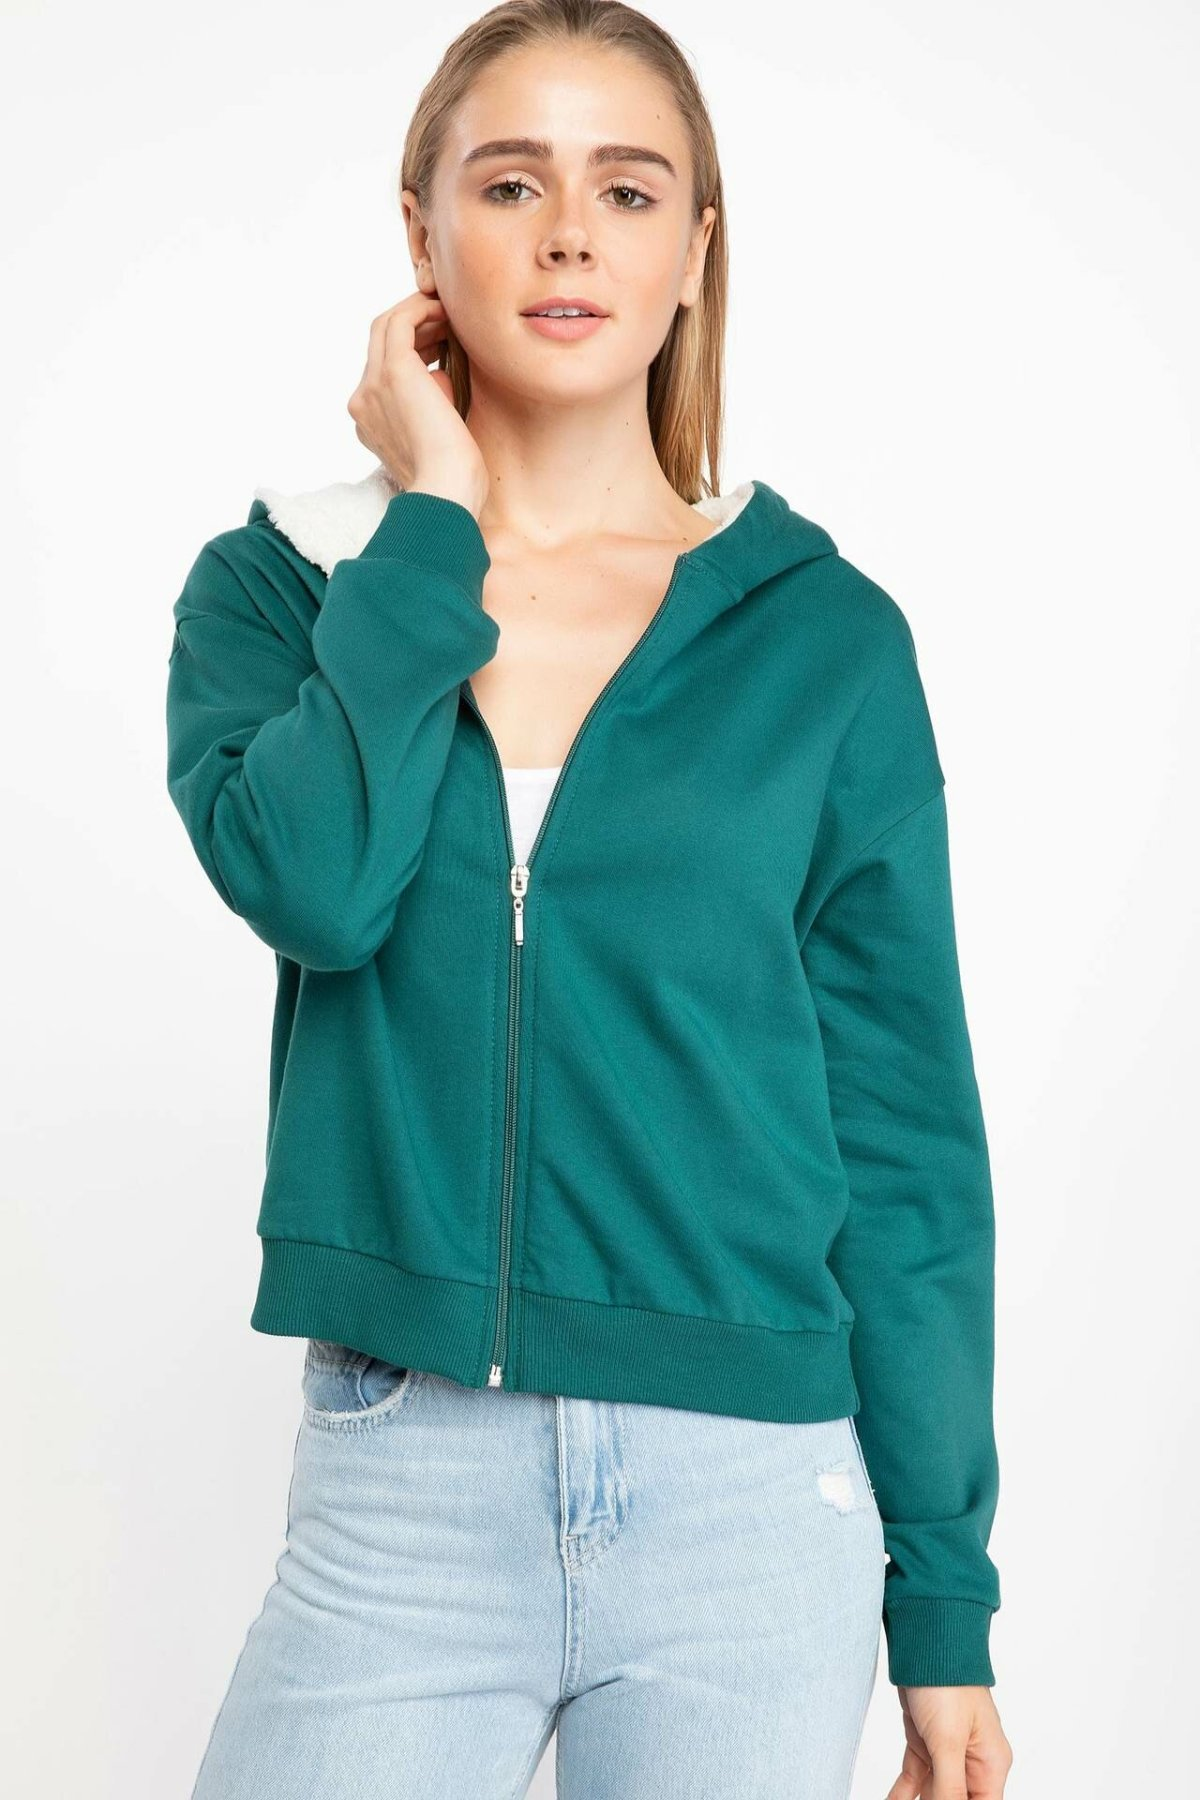 DeFacto Woman Autumn Green Color Tops Hoodies Women Casual Hooded Coats Women Thick Warm Sweatshirts Coat-J6800AZ18AU